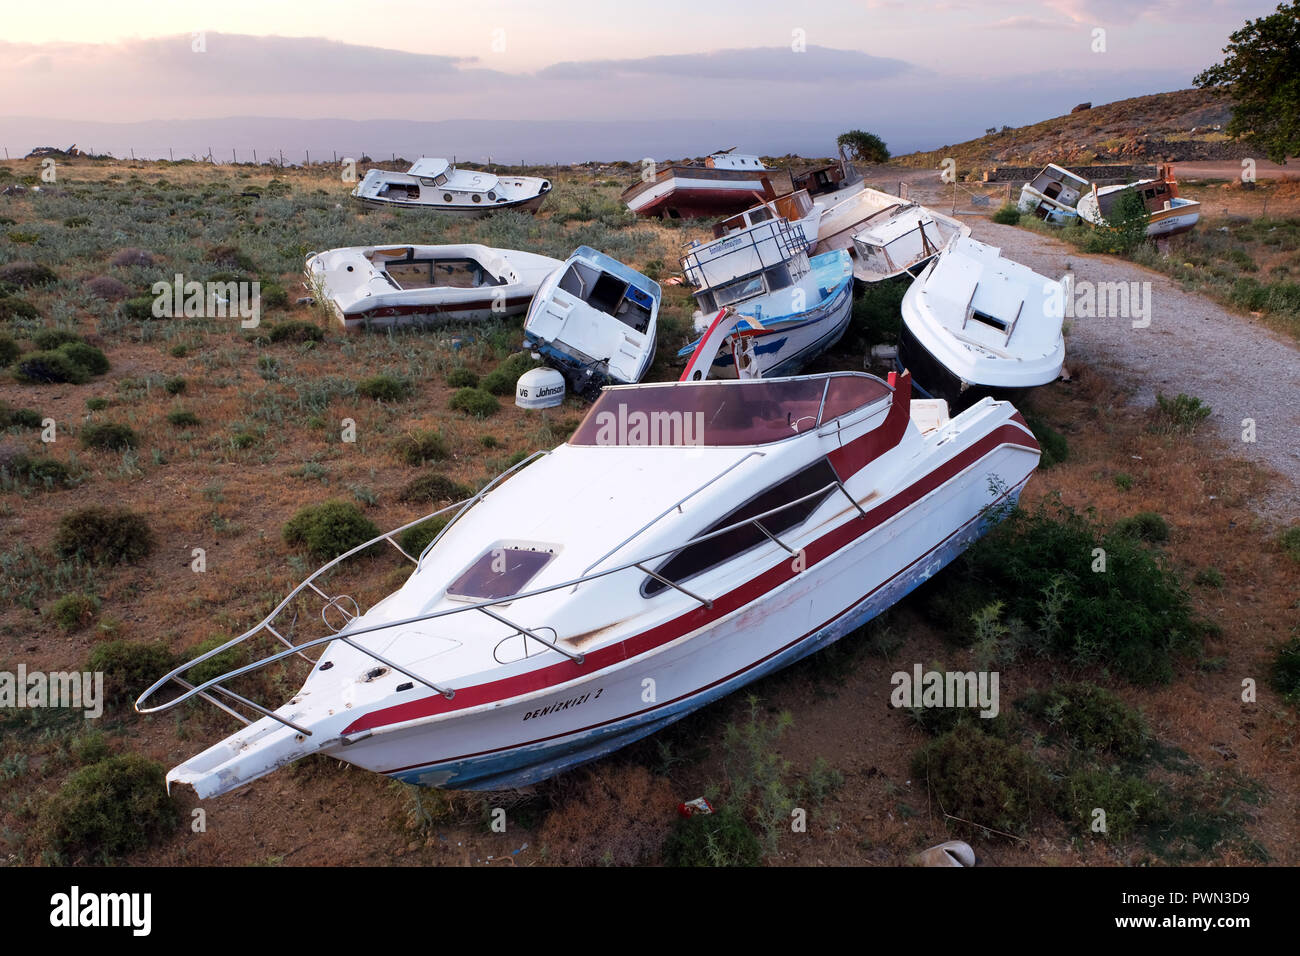 Dameged boats of refugees who have fled from Turkey across the Mediterranean Sea lie on a garbarge landfill near Molivos, Lesvos Island, Greece, in May 2018 - Fluchtboote auf einer Mülldeponie bei Molivos, Insel  Lesbos, Griechenland, Mai 2018 - Stock Image